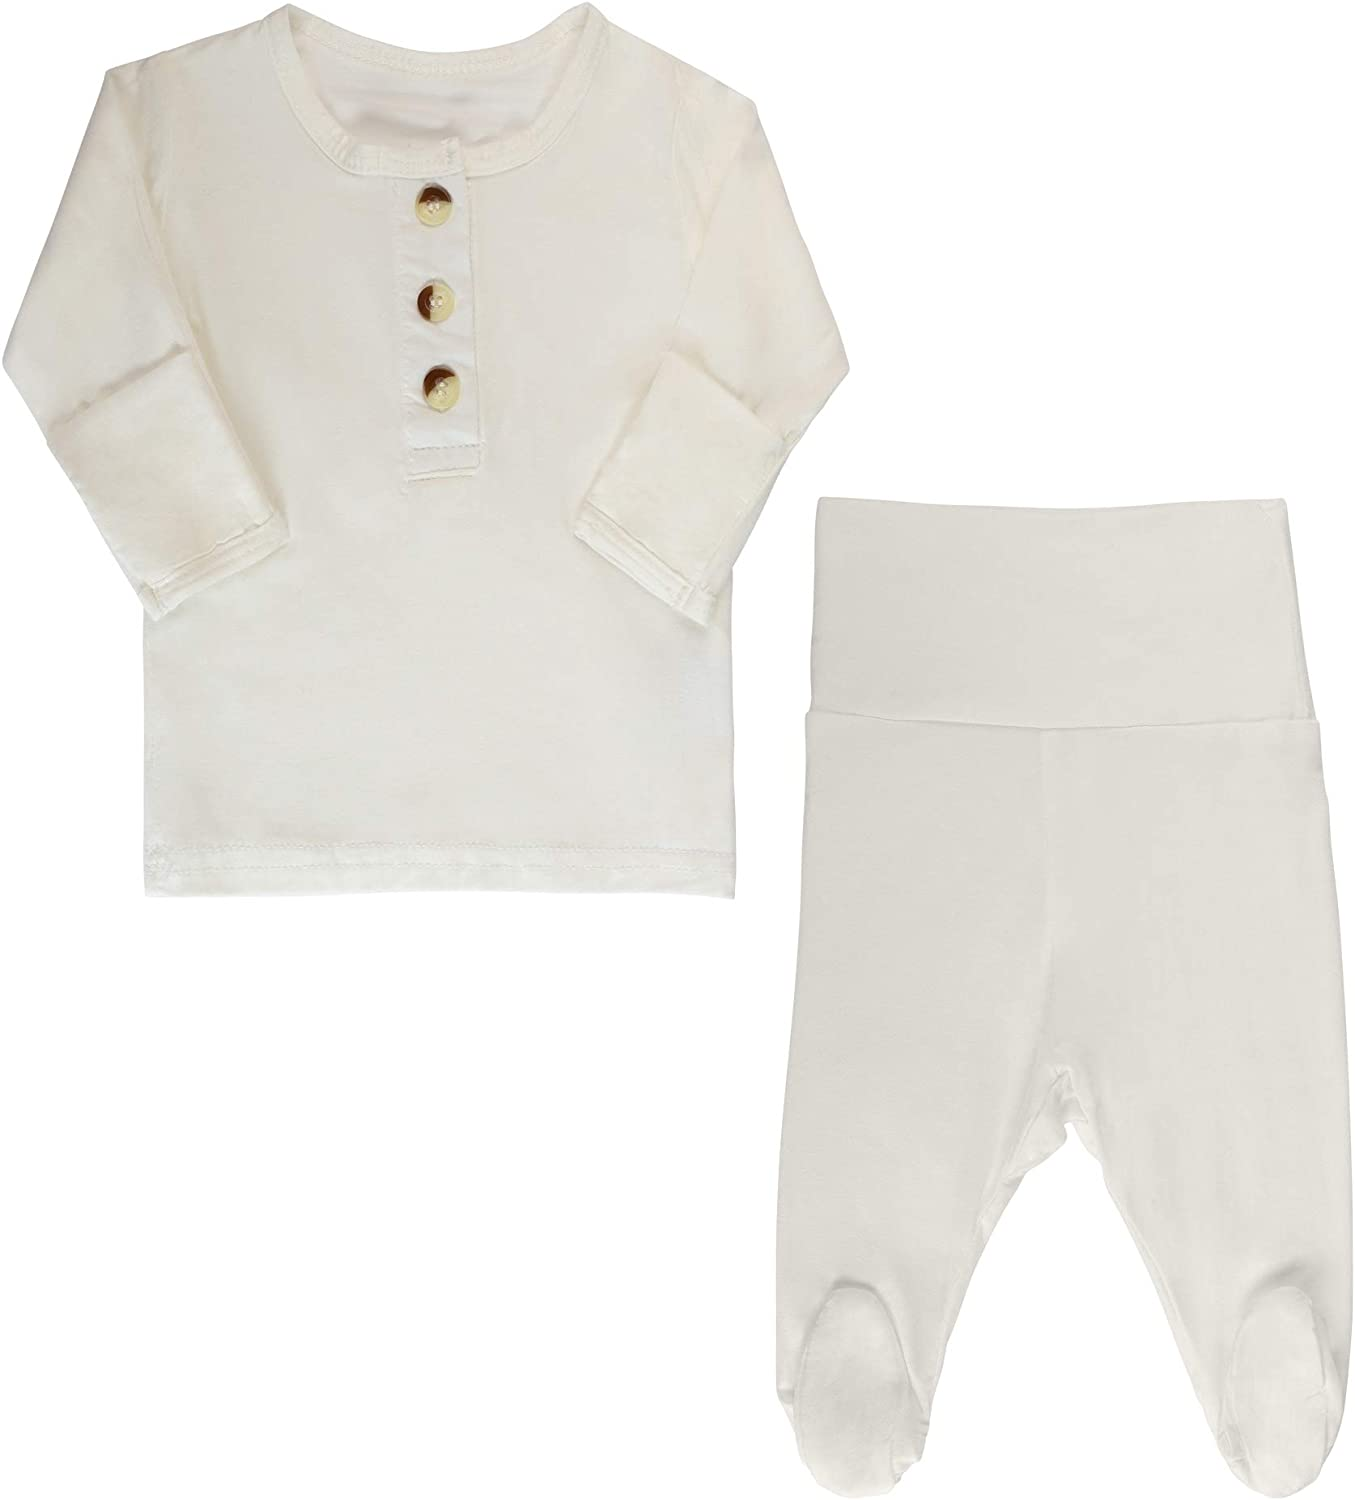 Top + Bottom Unisex Going Home Outfit Baby Boy - Girl   Newborn Boy Take Home Outfit Set